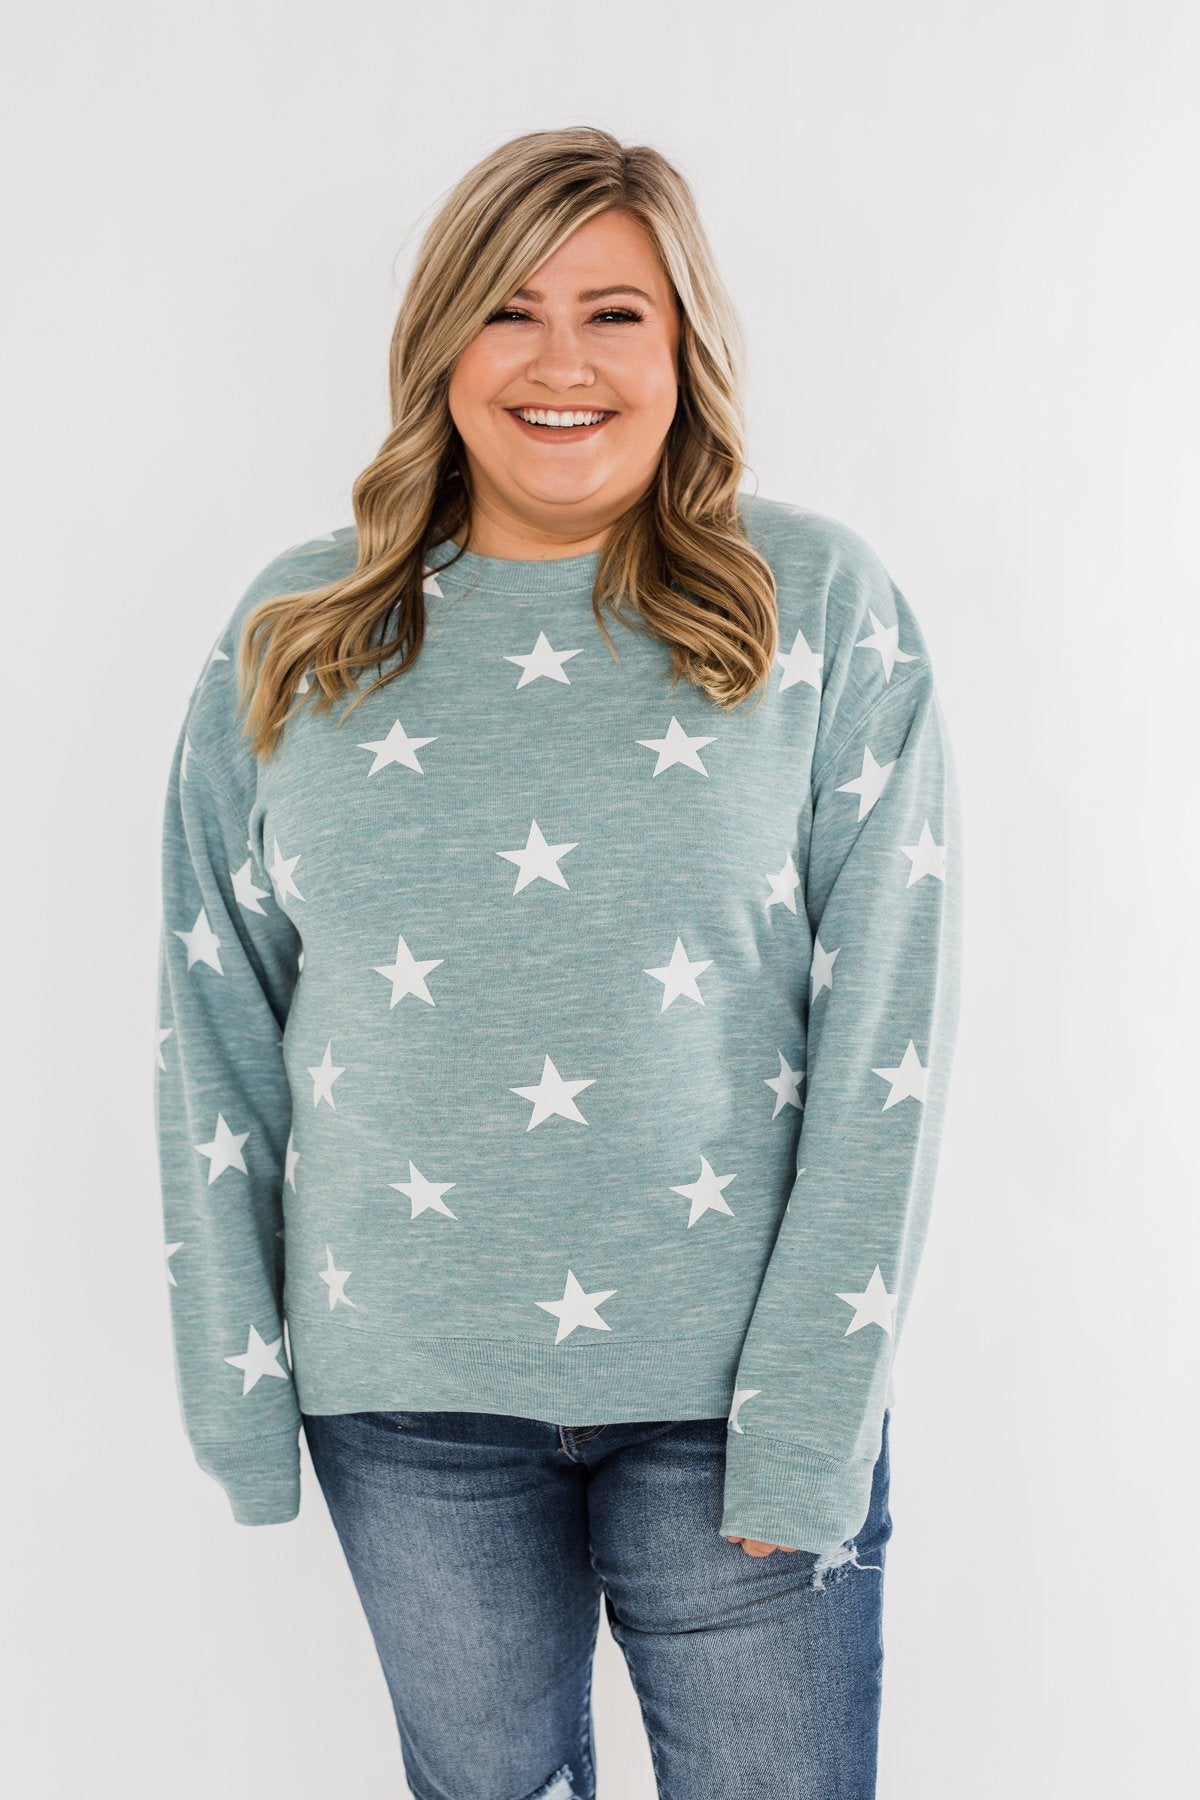 Counting The Stars Crew Neck Pullover- Dusty Teal